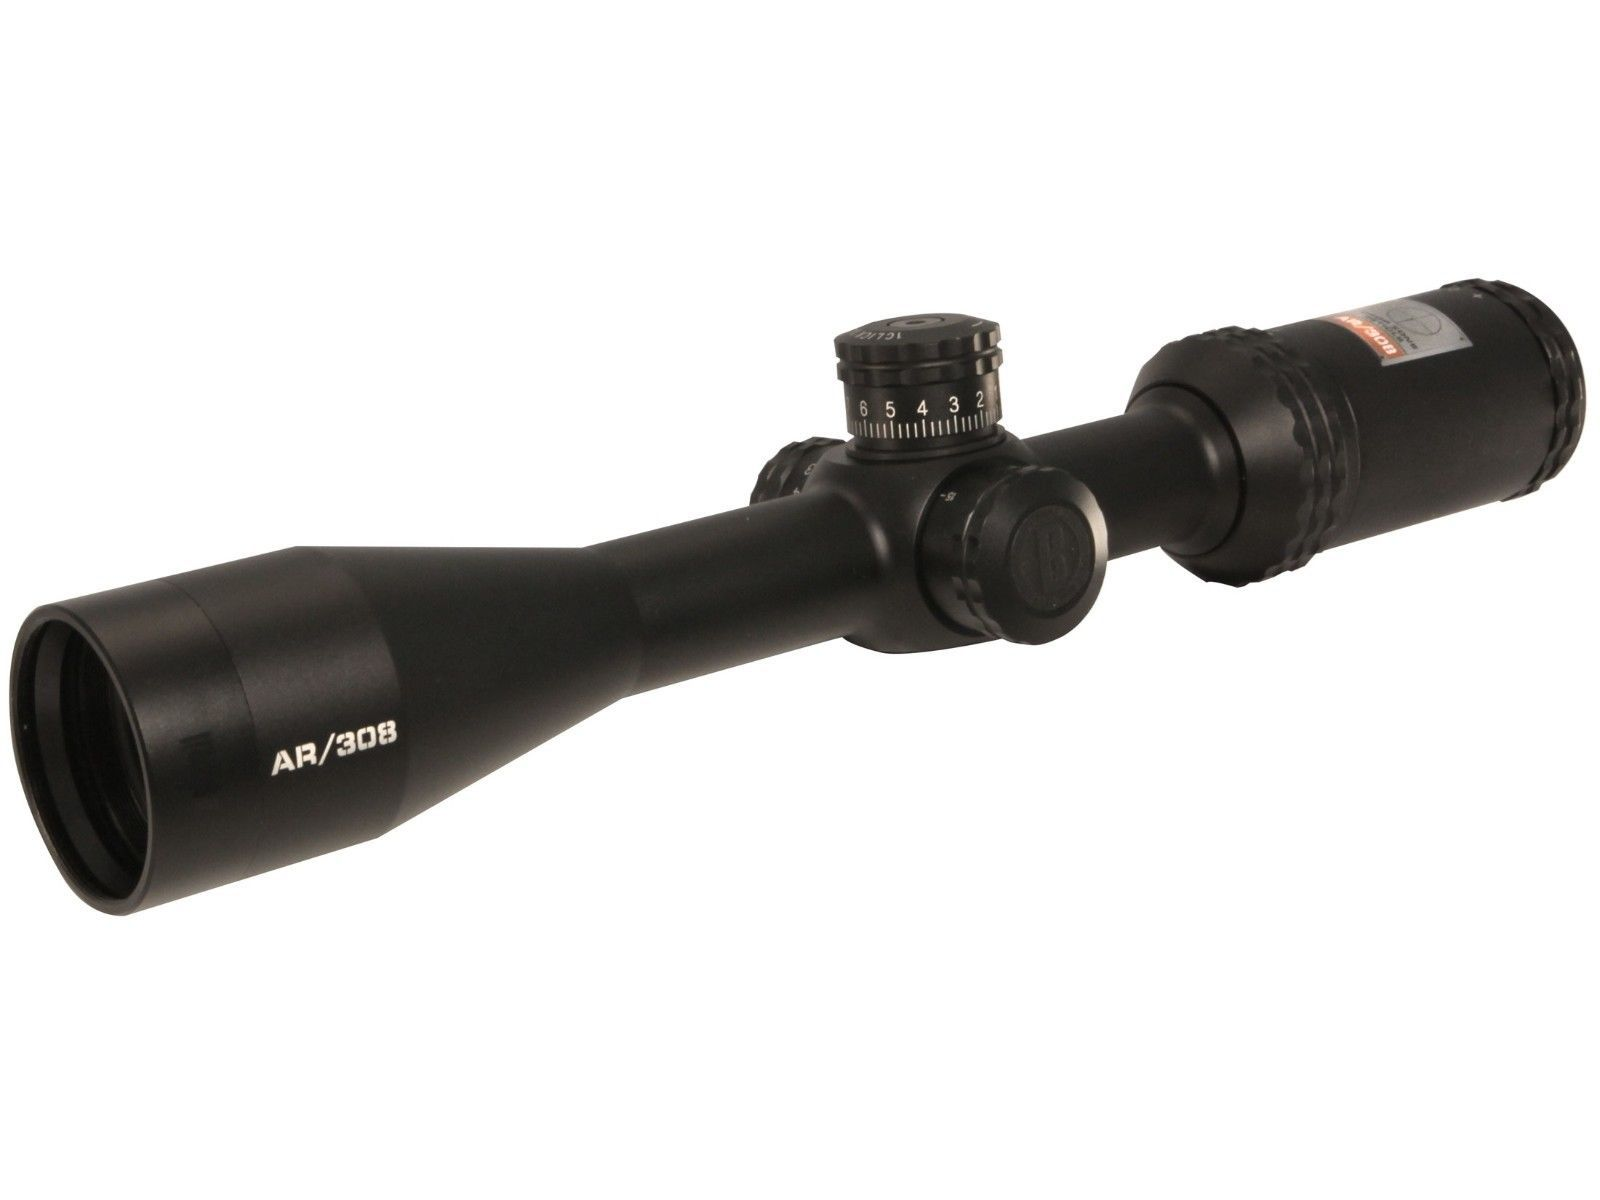 BUSHNELL 4.5-18x40, 308 BDC Reticle, AR optics  AR945184B